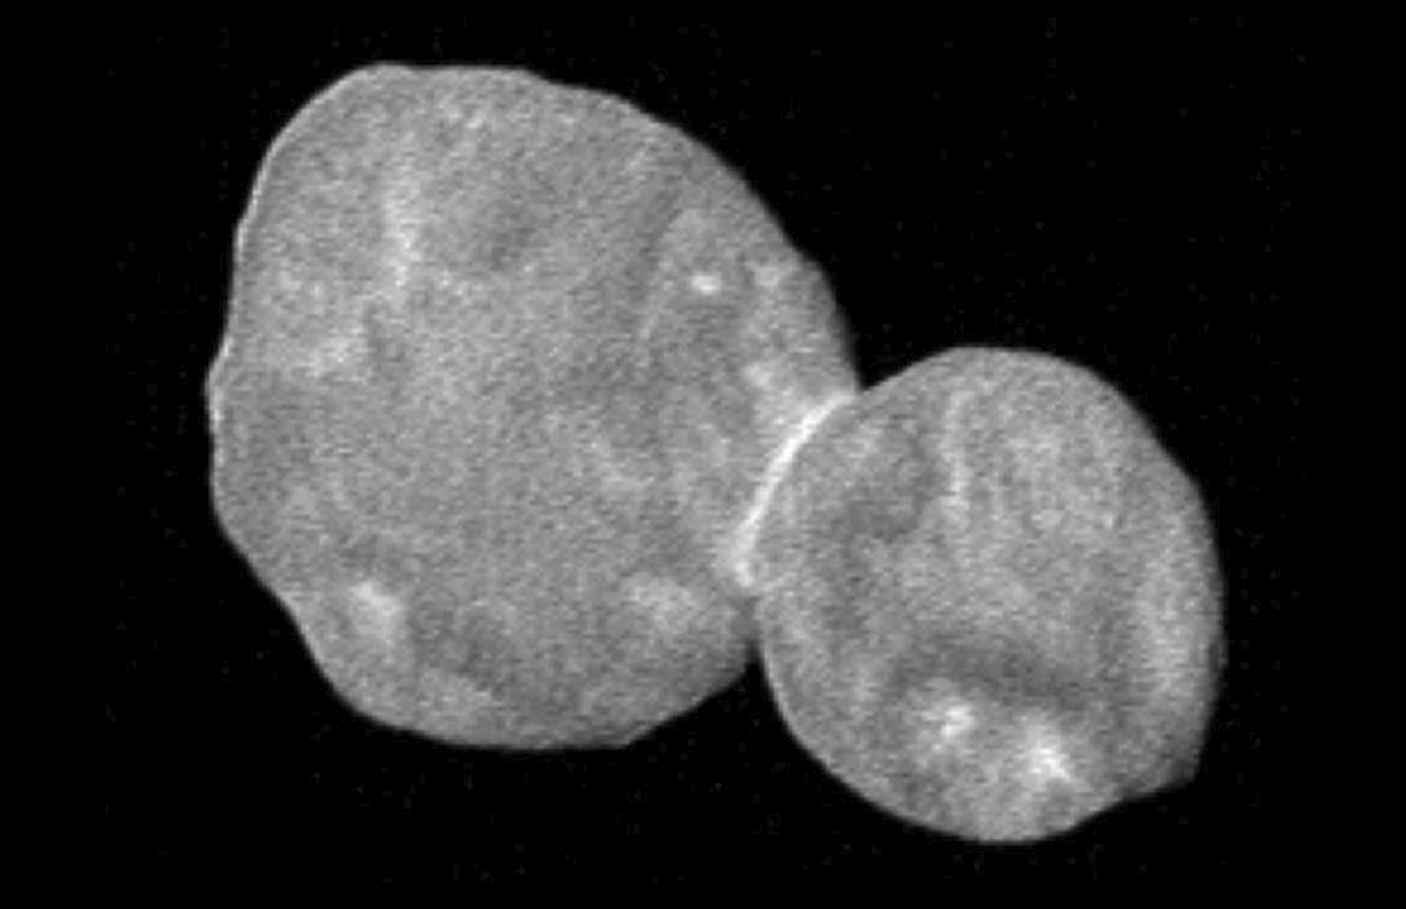 Highest resolution image yet of Optima Thule, the most distant object ever visited by a human spacecraft. Credit: NASA/Johns Hopkins University Applied Physics Laboratory/Southwest Research Institute)